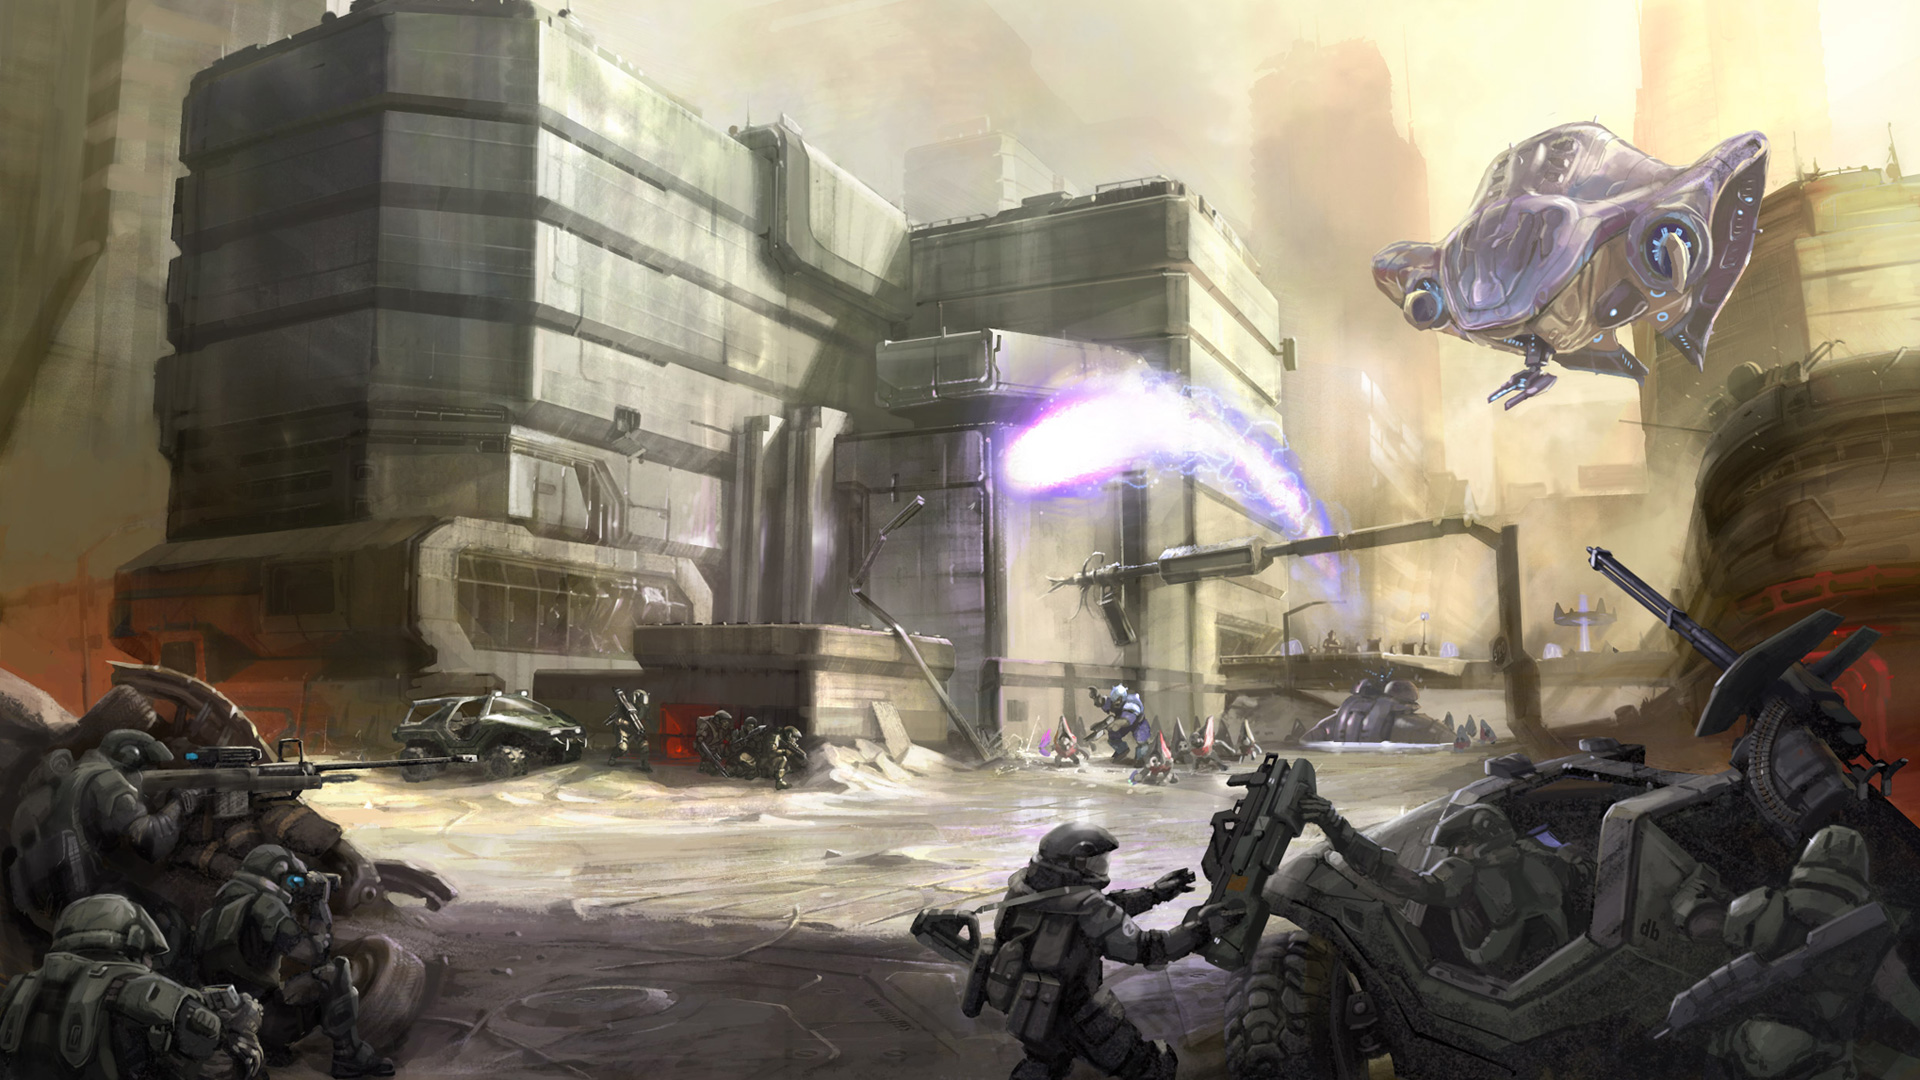 Halo 2 Wallpaper in 1920x1080